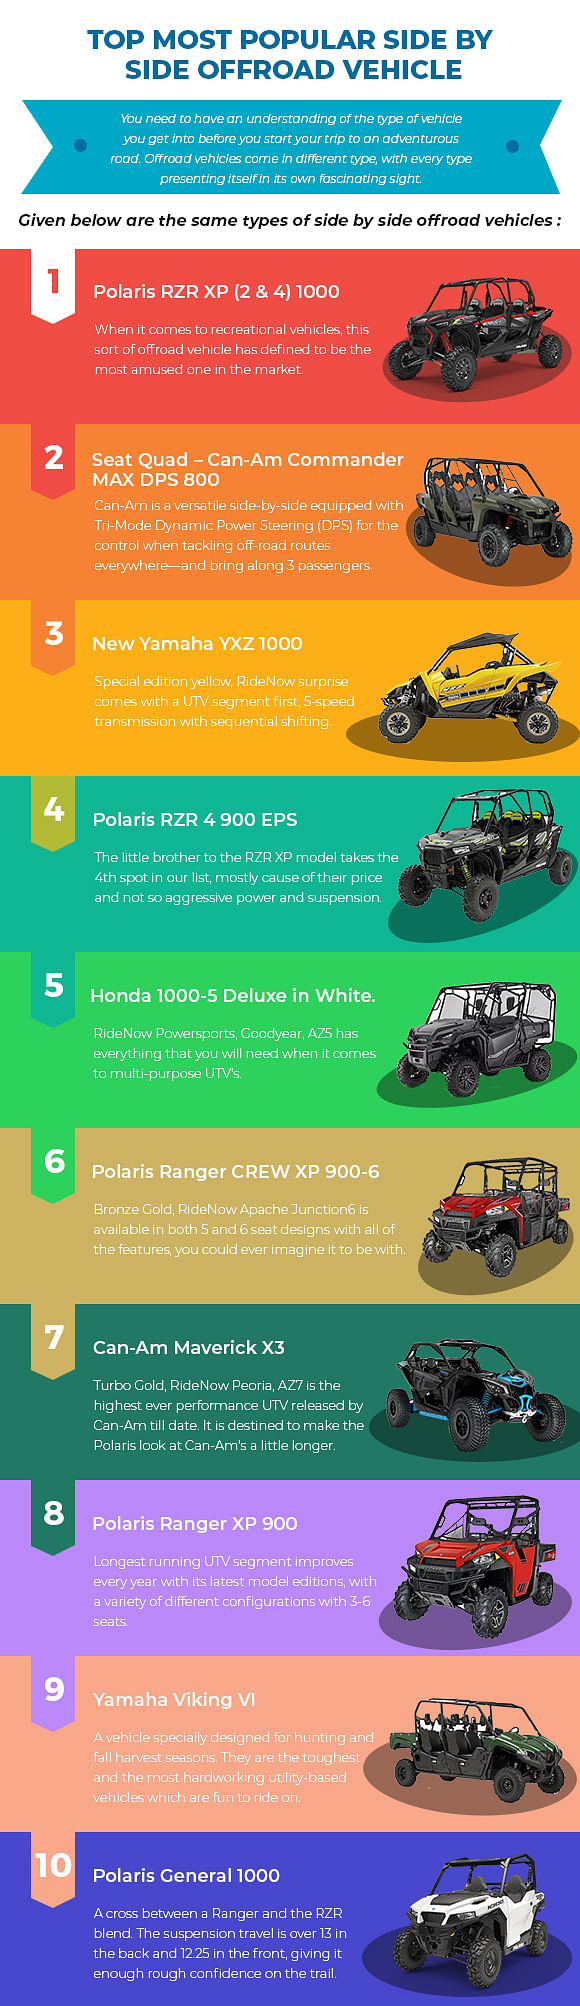 Top Most Popular Side by Side Offroad Vehicle by Grand Adventures